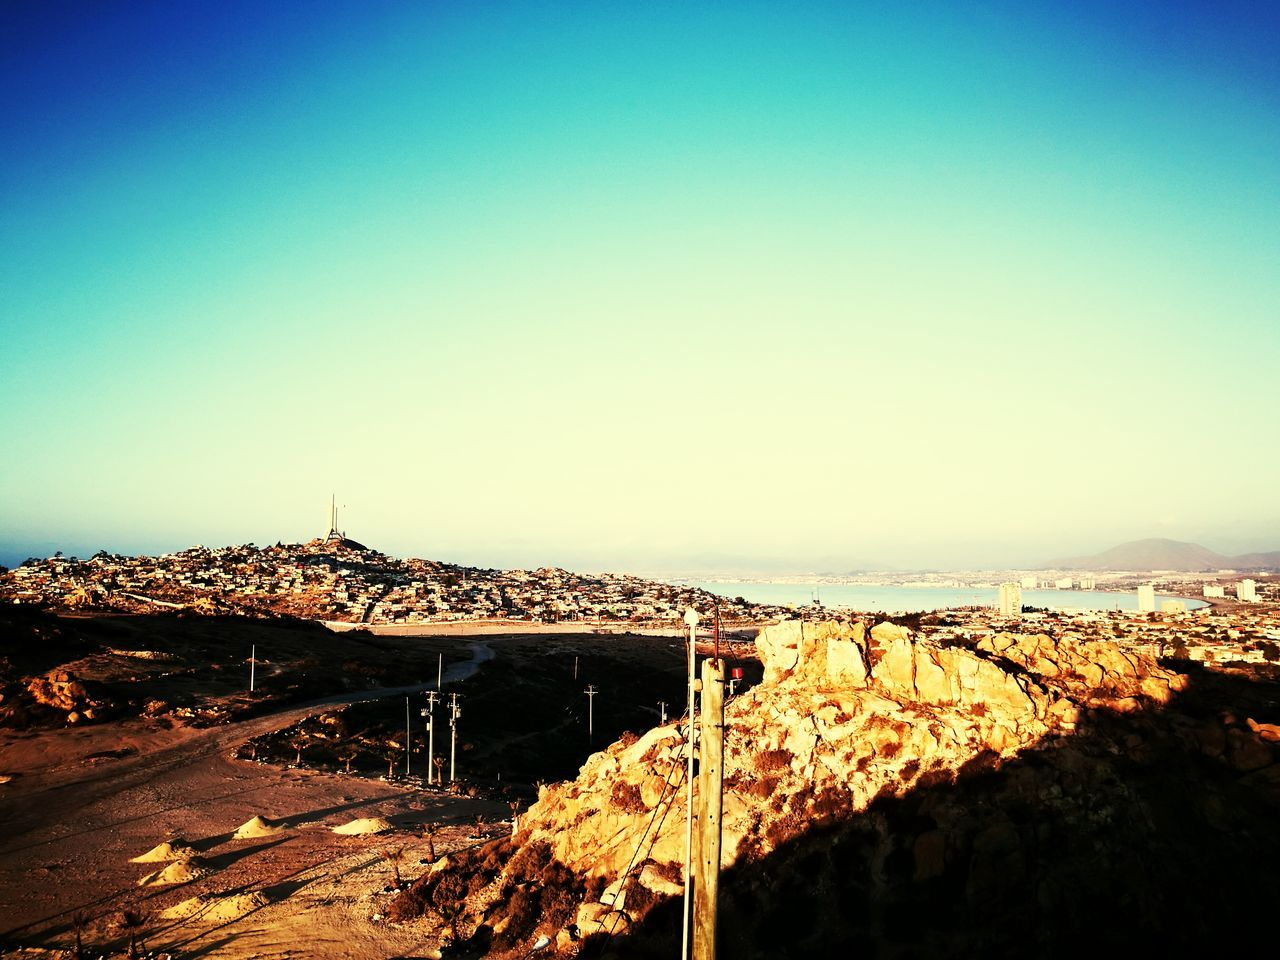 no people, clear sky, landscape, outdoors, nature, mountain, scenics, architecture, beauty in nature, day, sky, cityscape, city